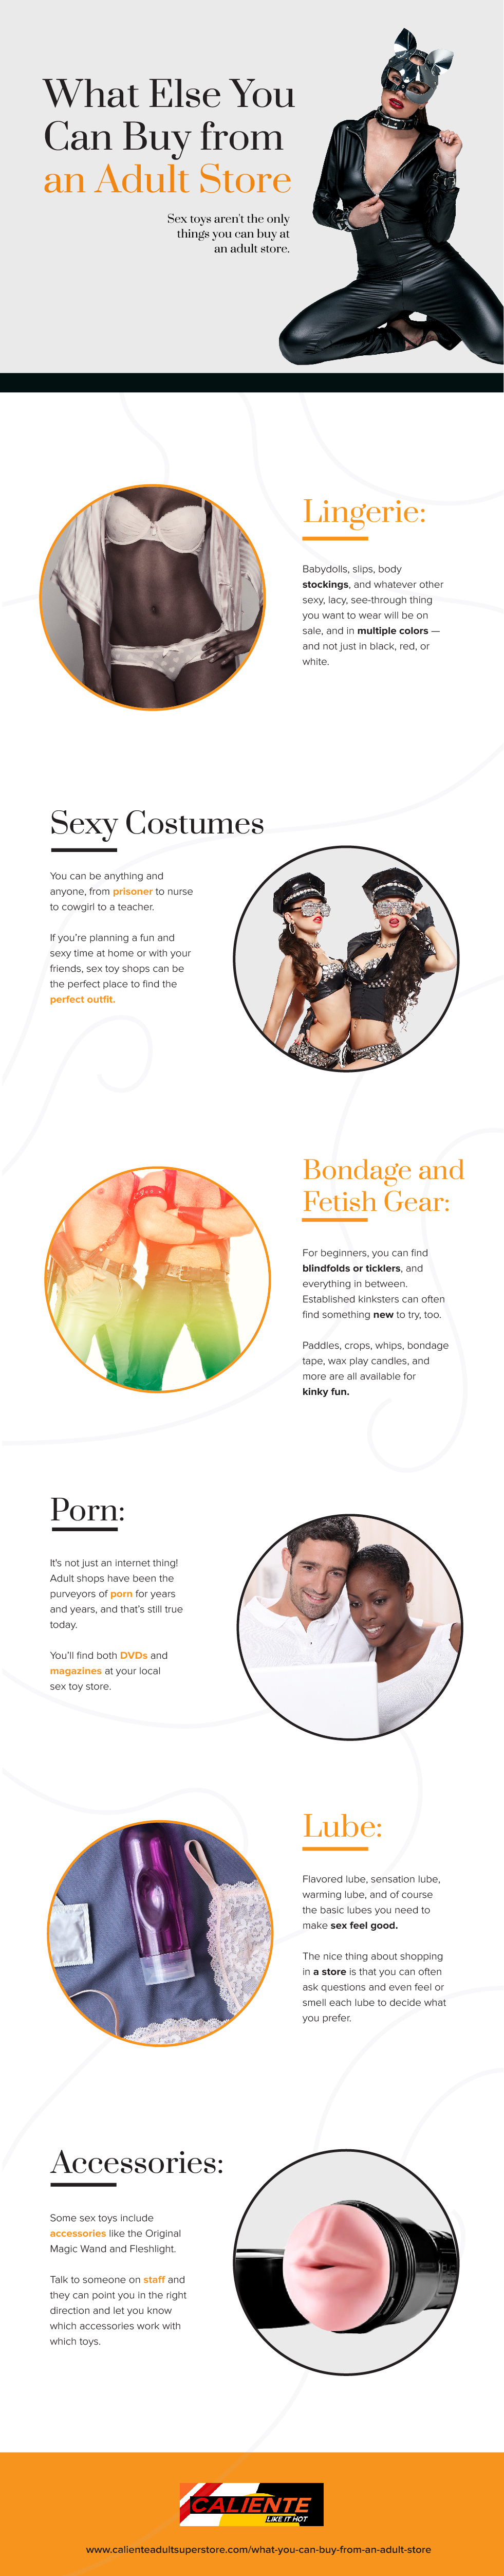 Infographic for What You Can Buy from an Adult Store